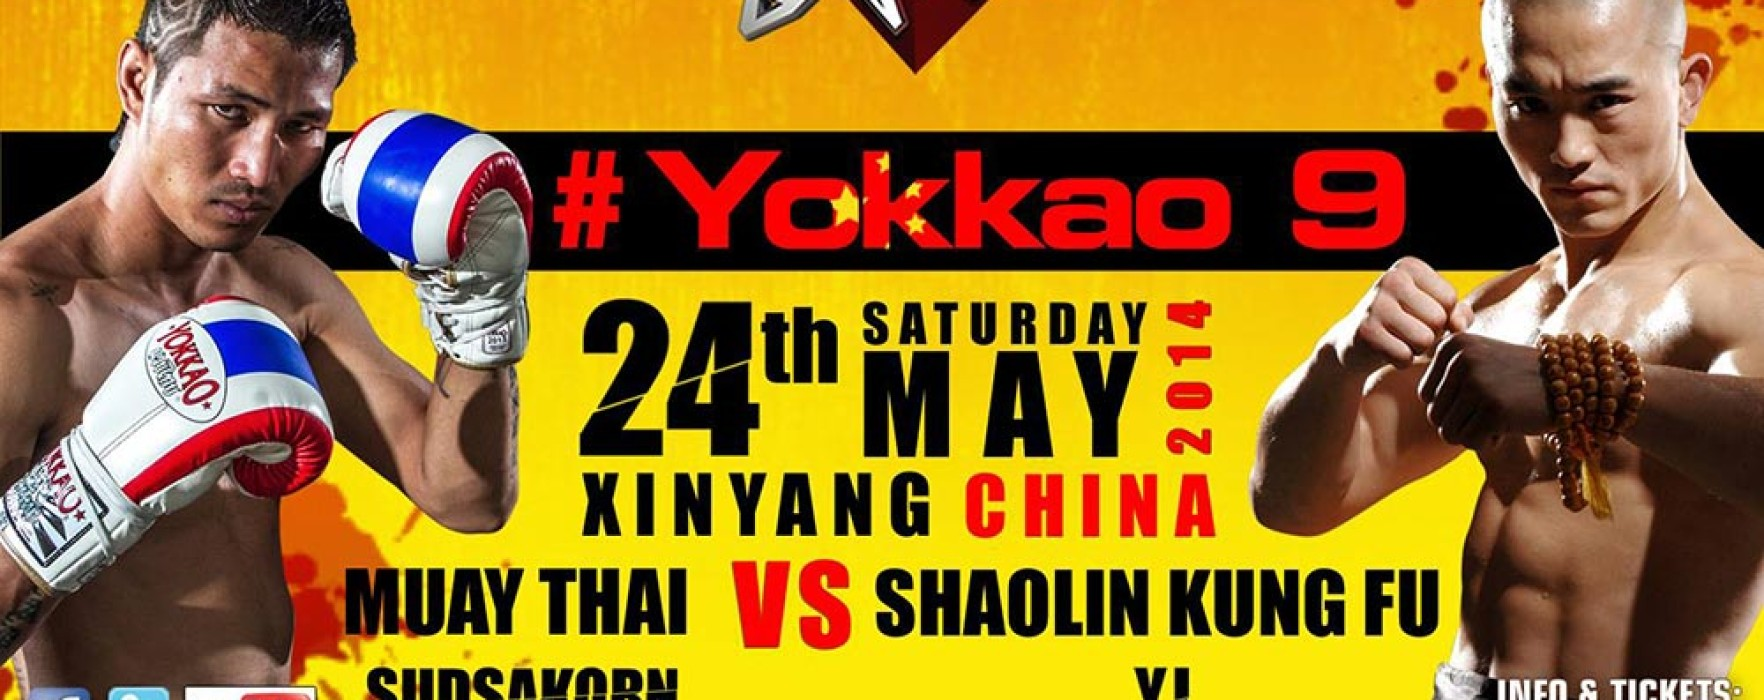 Muay Thai vs Shaolin Kung Fu – Sudsakorn vs Yi Long at #Yokkao 9